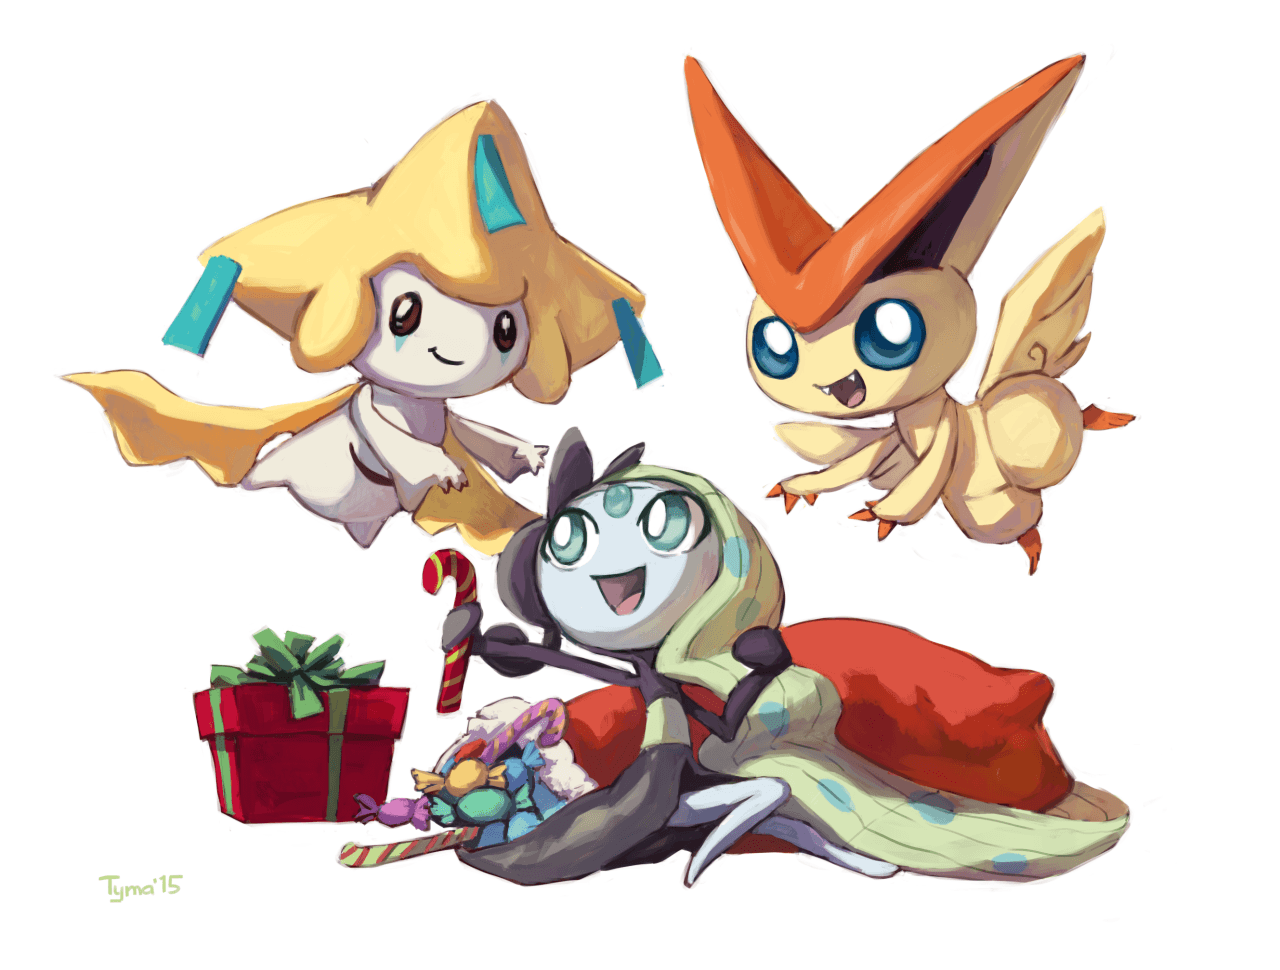 Jirachi, Meloetta, and Victini | 4 | Pinterest | Pokémon and Anime